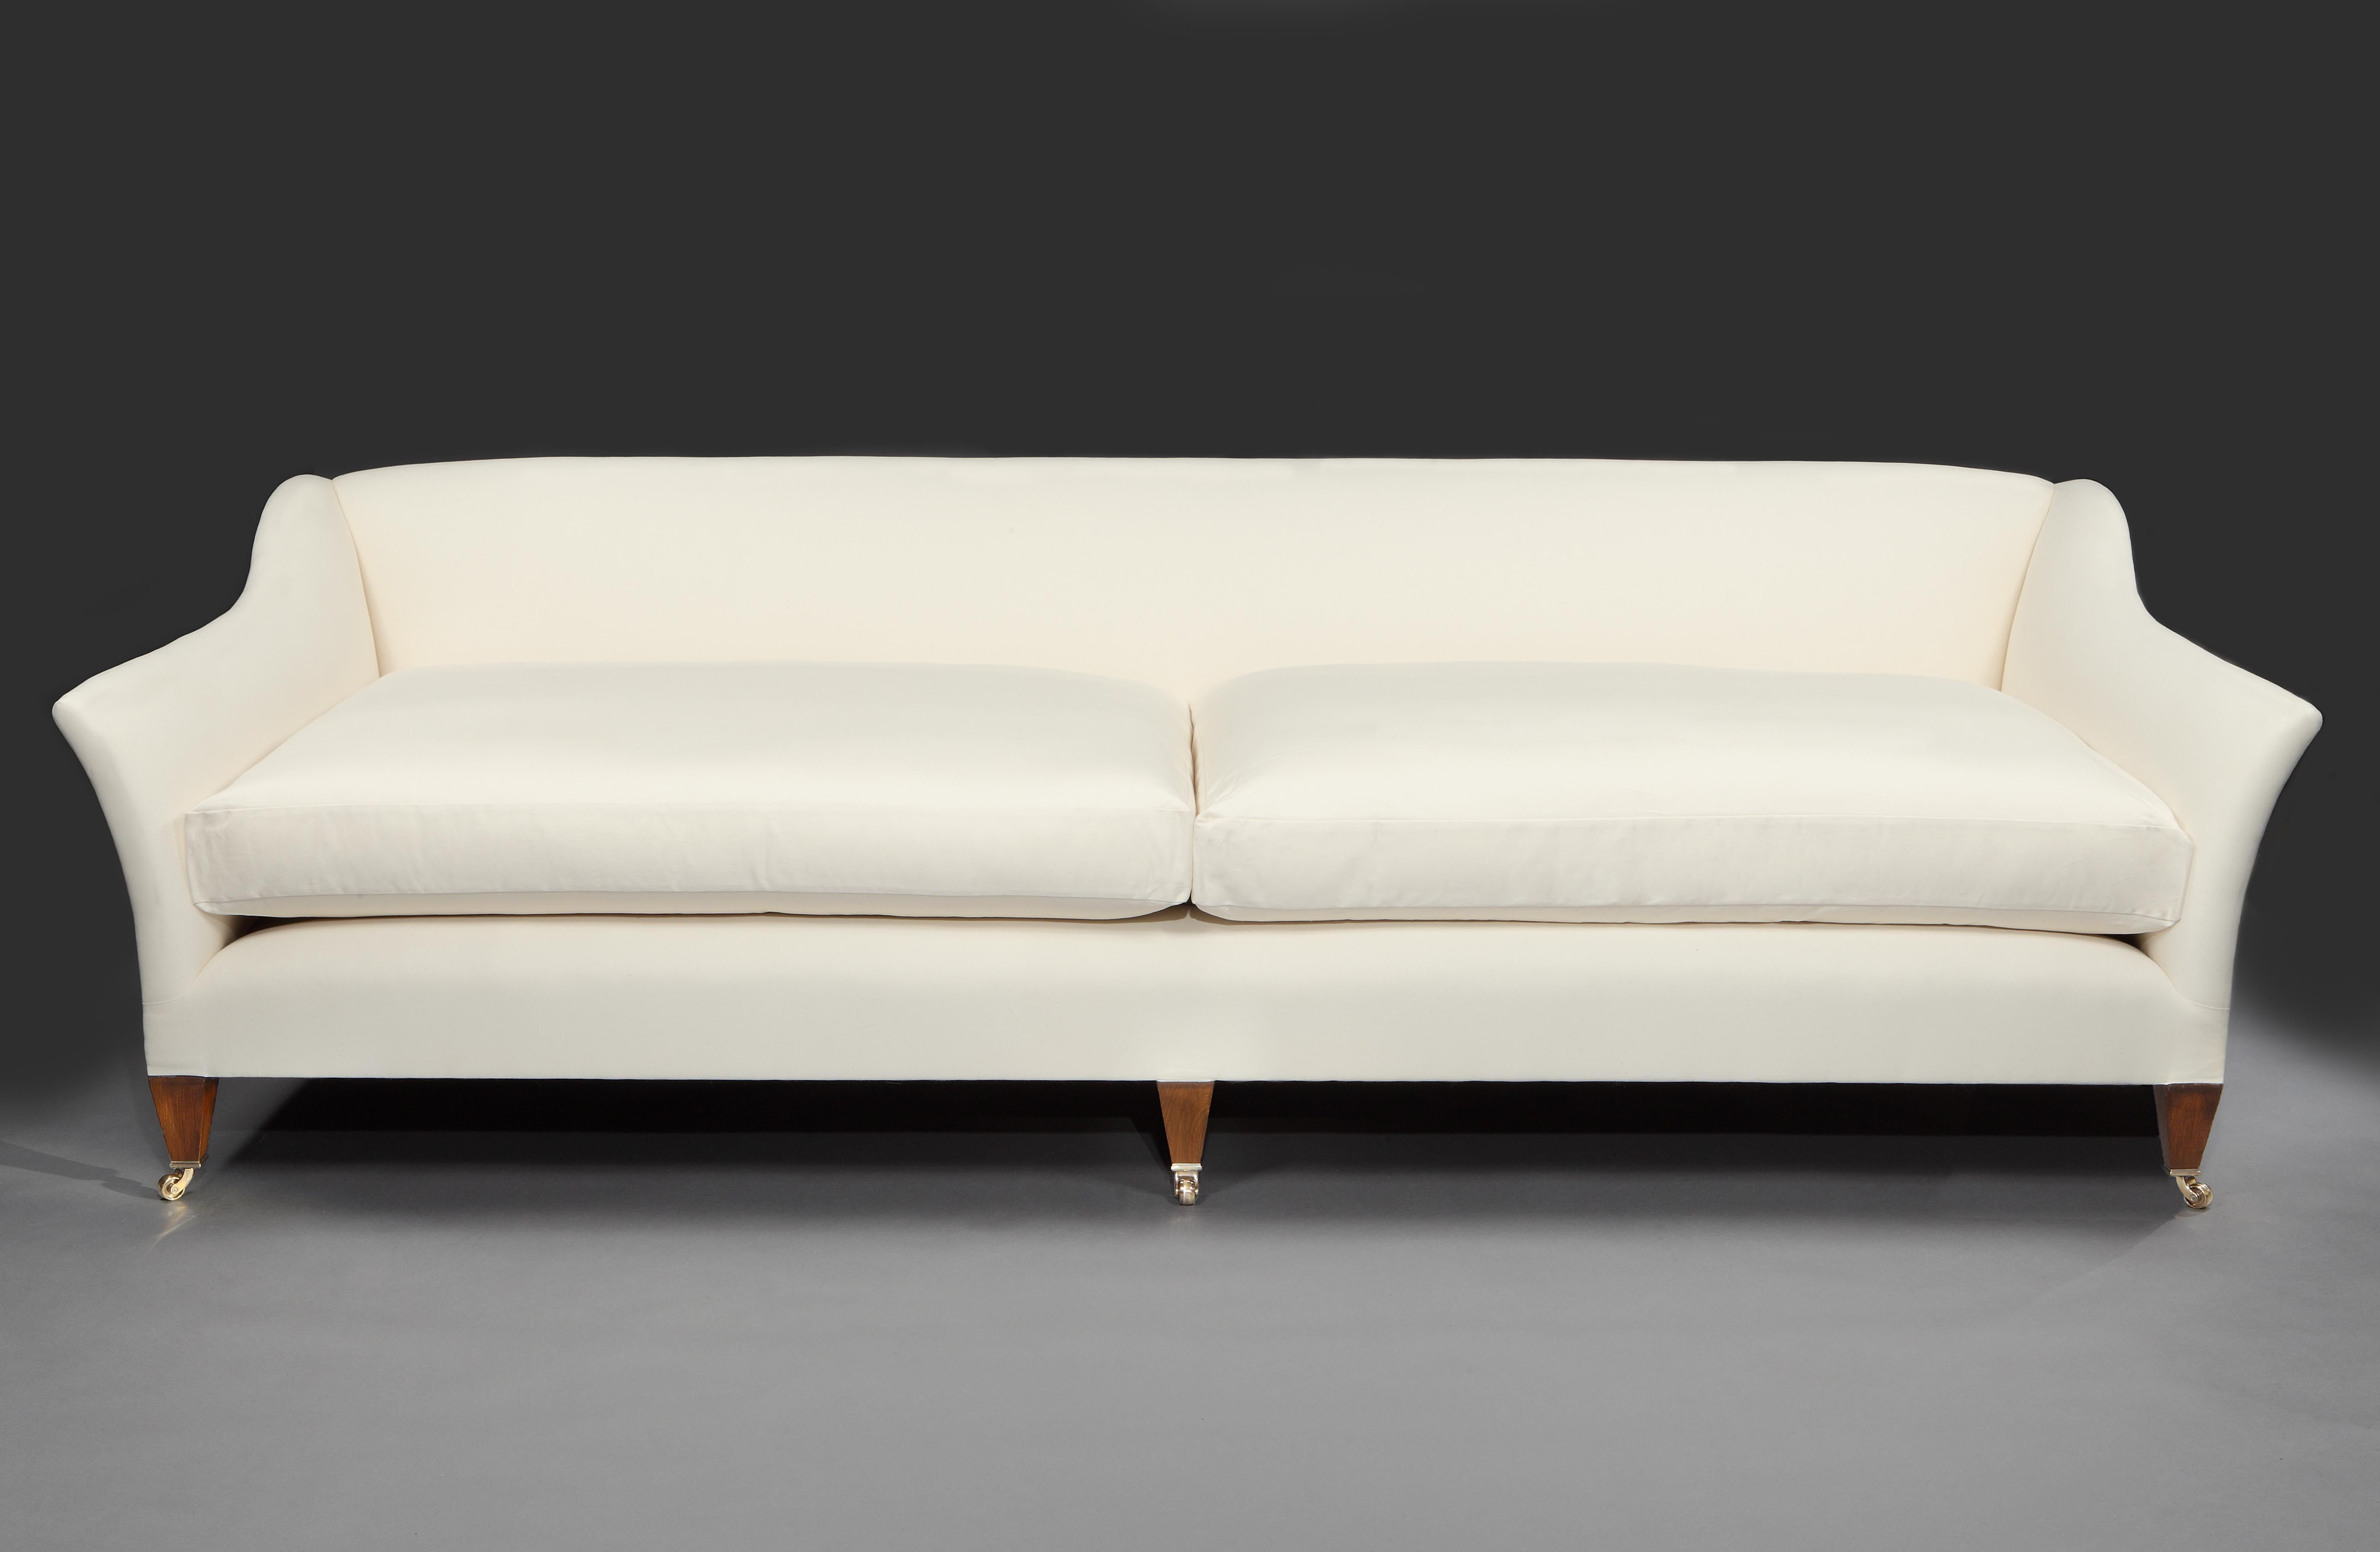 The Drawing Room Sofa By Rose Uniacke